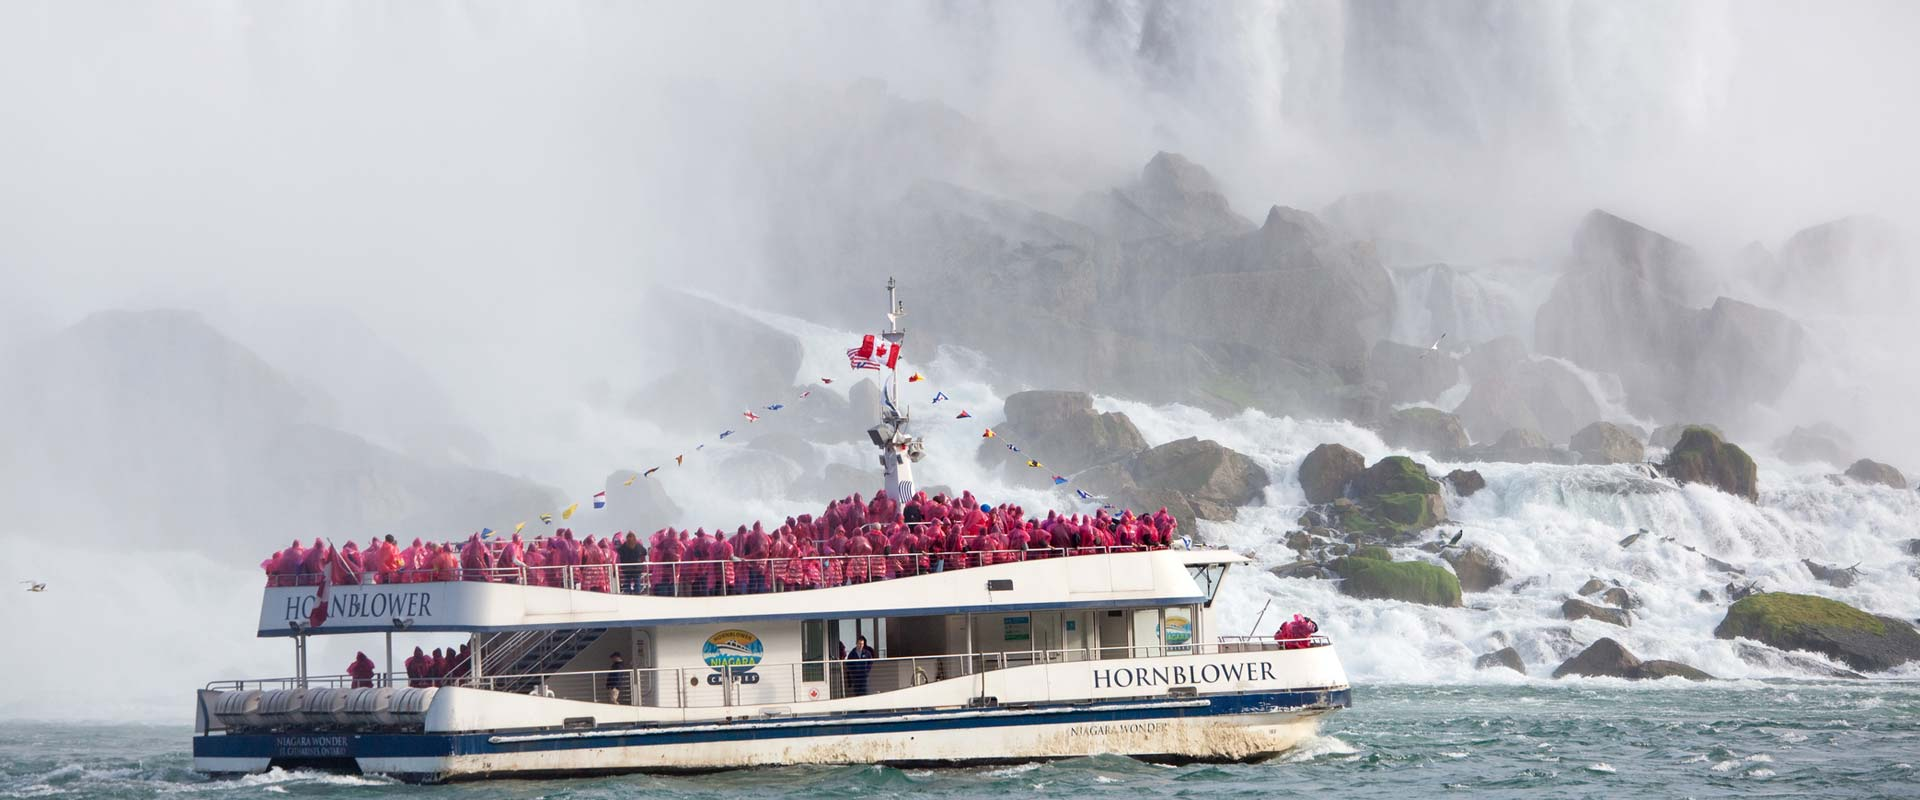 Are Kids Allowed on Niagara Falls Boat Tour